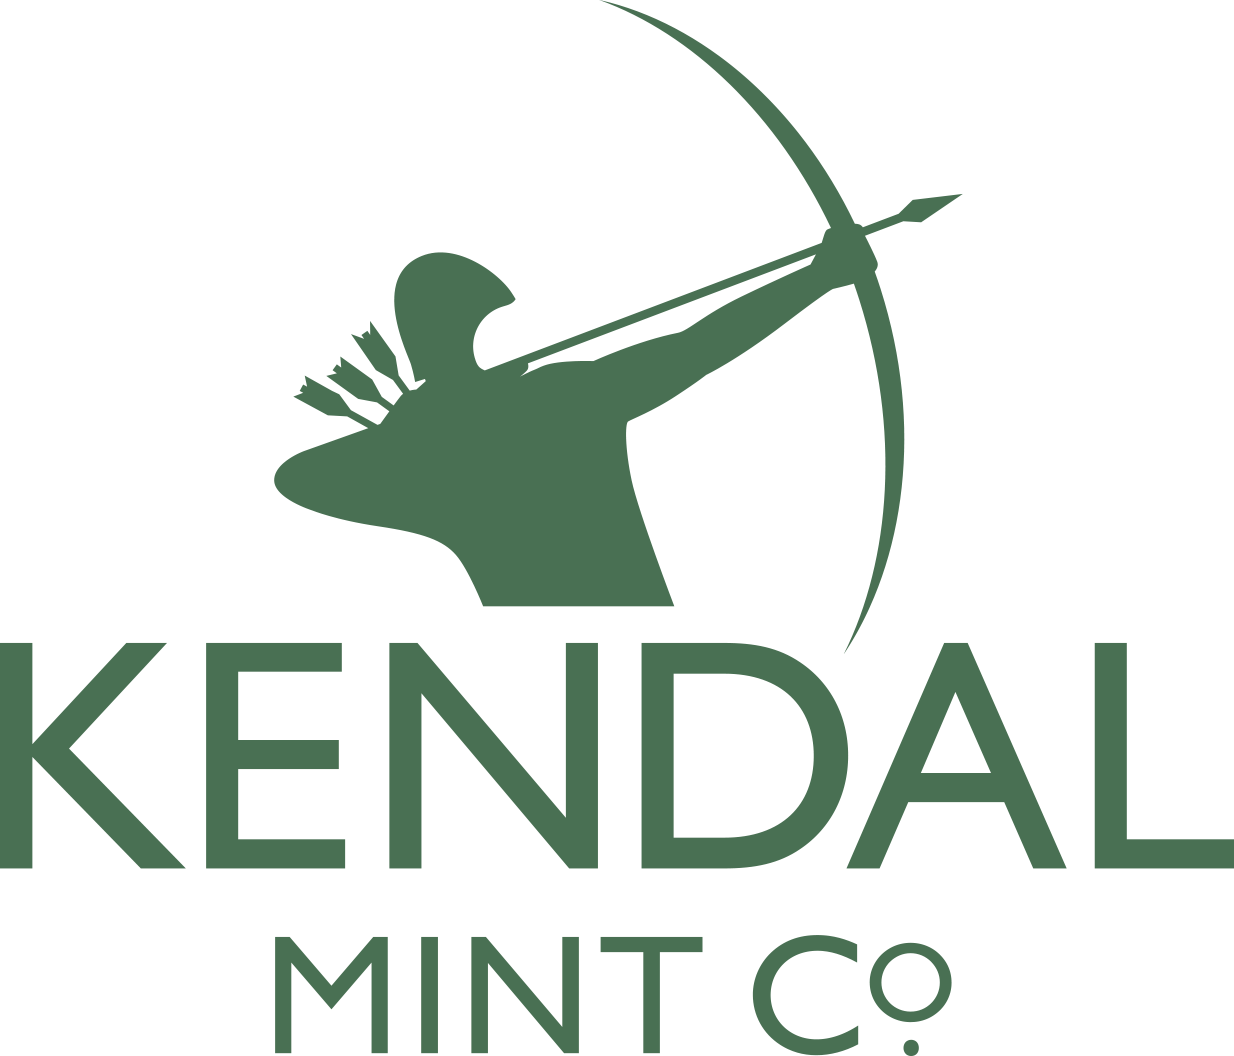 Kendal Mint Co. | KMC | Quality British Sports Nutrition